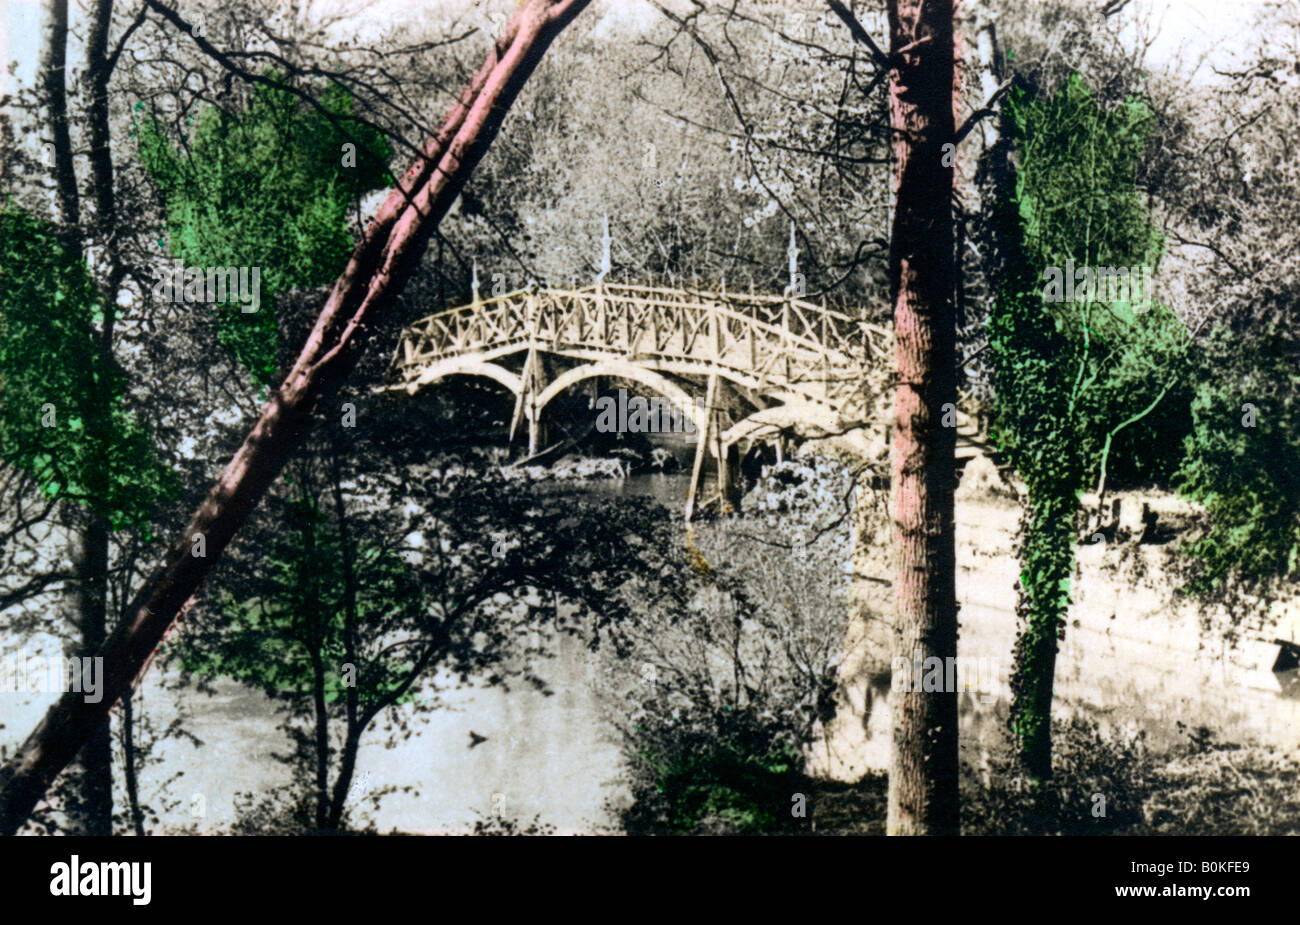 Bridge over the River Thames at Nuneham Courtenay, Oxfordshire, 1926. Artist: Cavenders Ltd - Stock Image